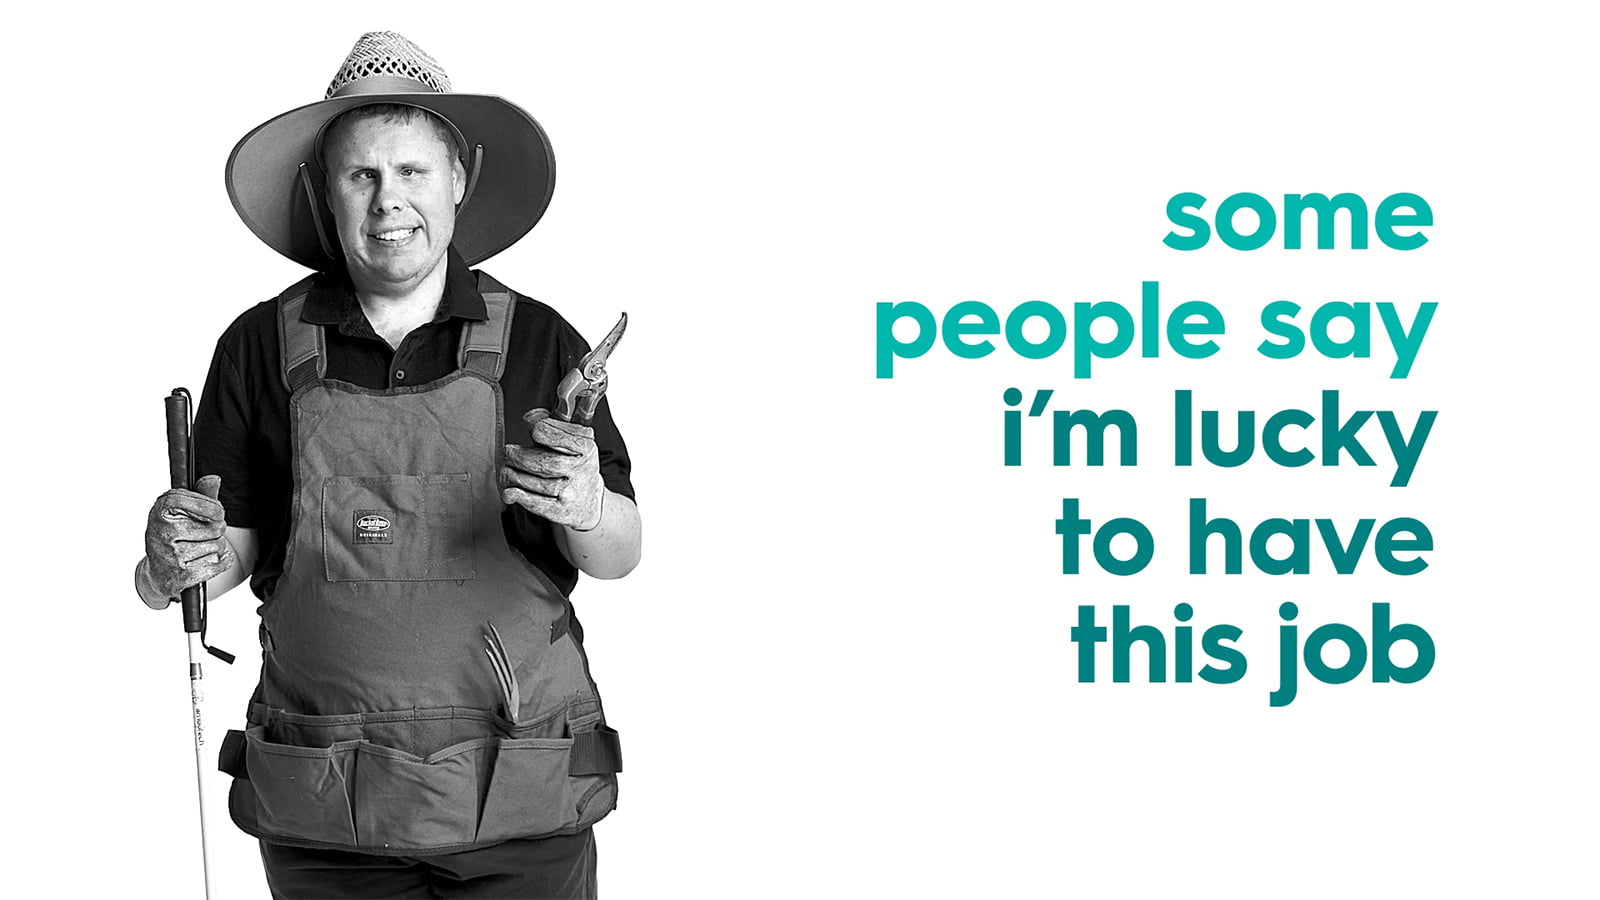 Man with a disability holding sheers and wearing a hat with the text 'some people say i'm lucky to have this job'